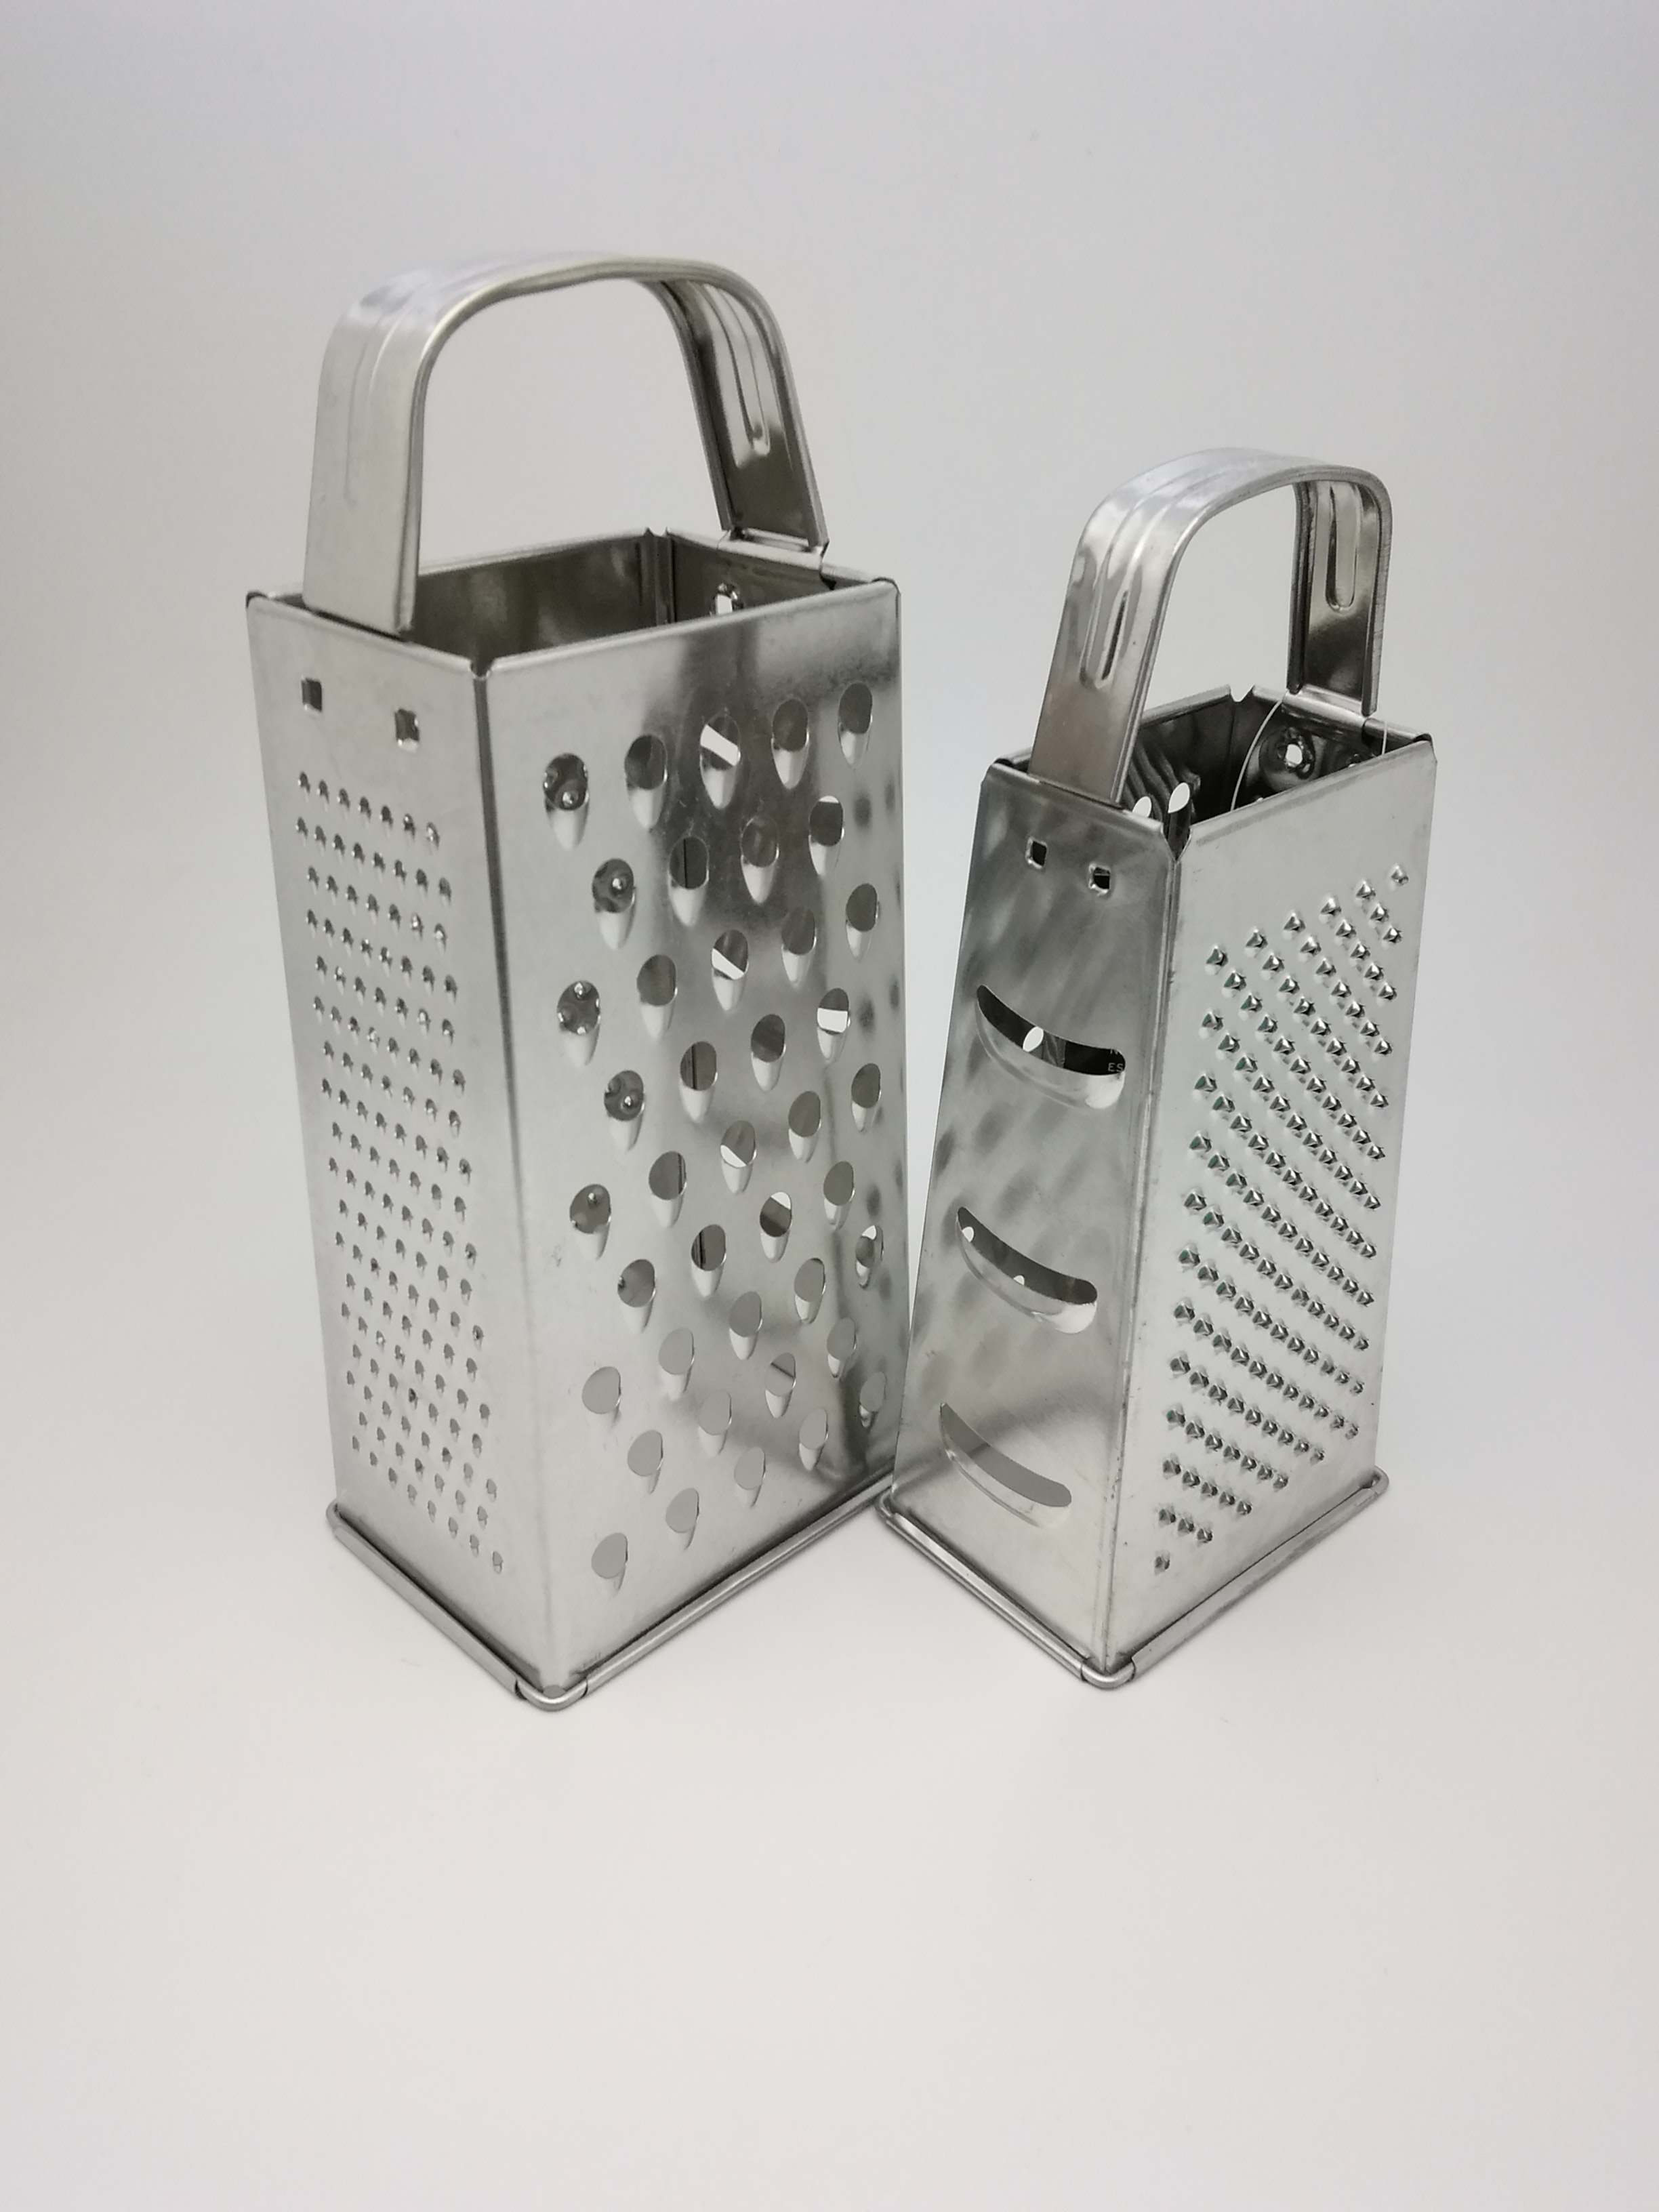 4-way graters